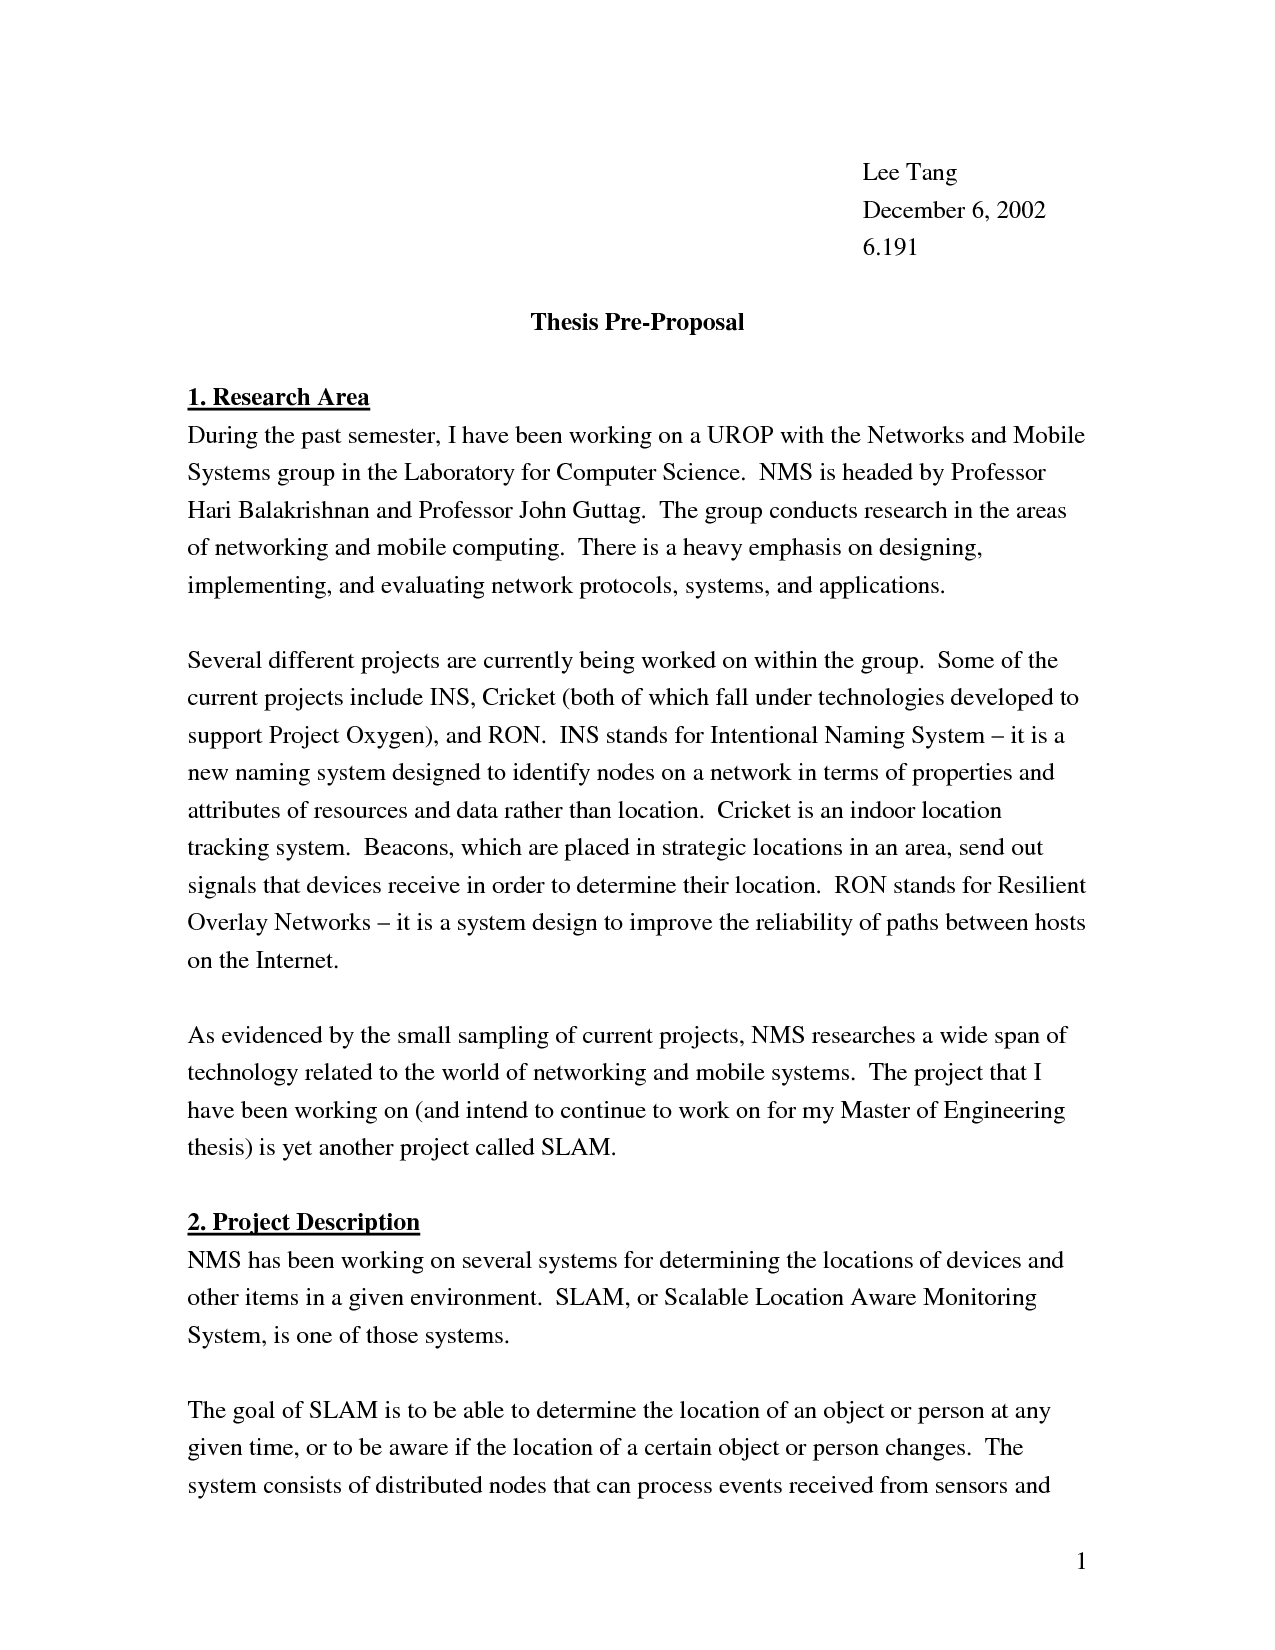 Graduate School Essay Examples A Research Paper Apa Style Research Paper Abstract Example A Research Paper  Apa Style Research Paper Essay For Gay Marriage also Essay On Any Topic Makemyassignments Homework Help Australiauks Best Essay Help  Essay On Nutritious Food